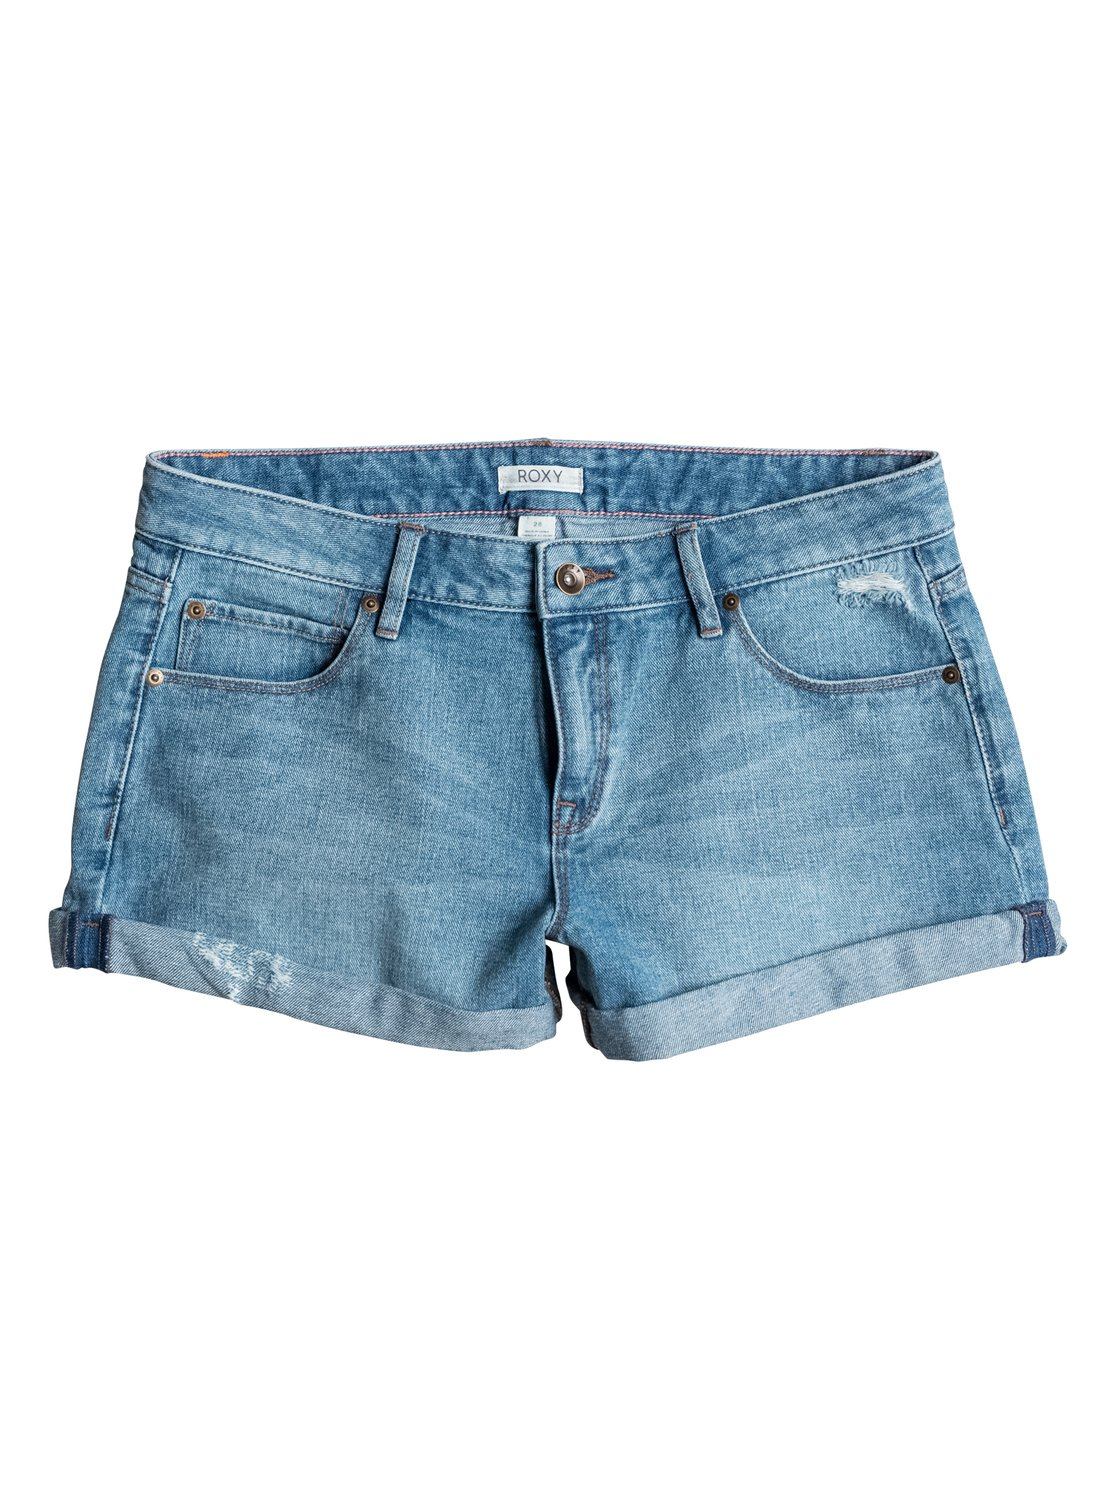 Midtown Vintage Med Blue Denim Shorts от Roxy RU